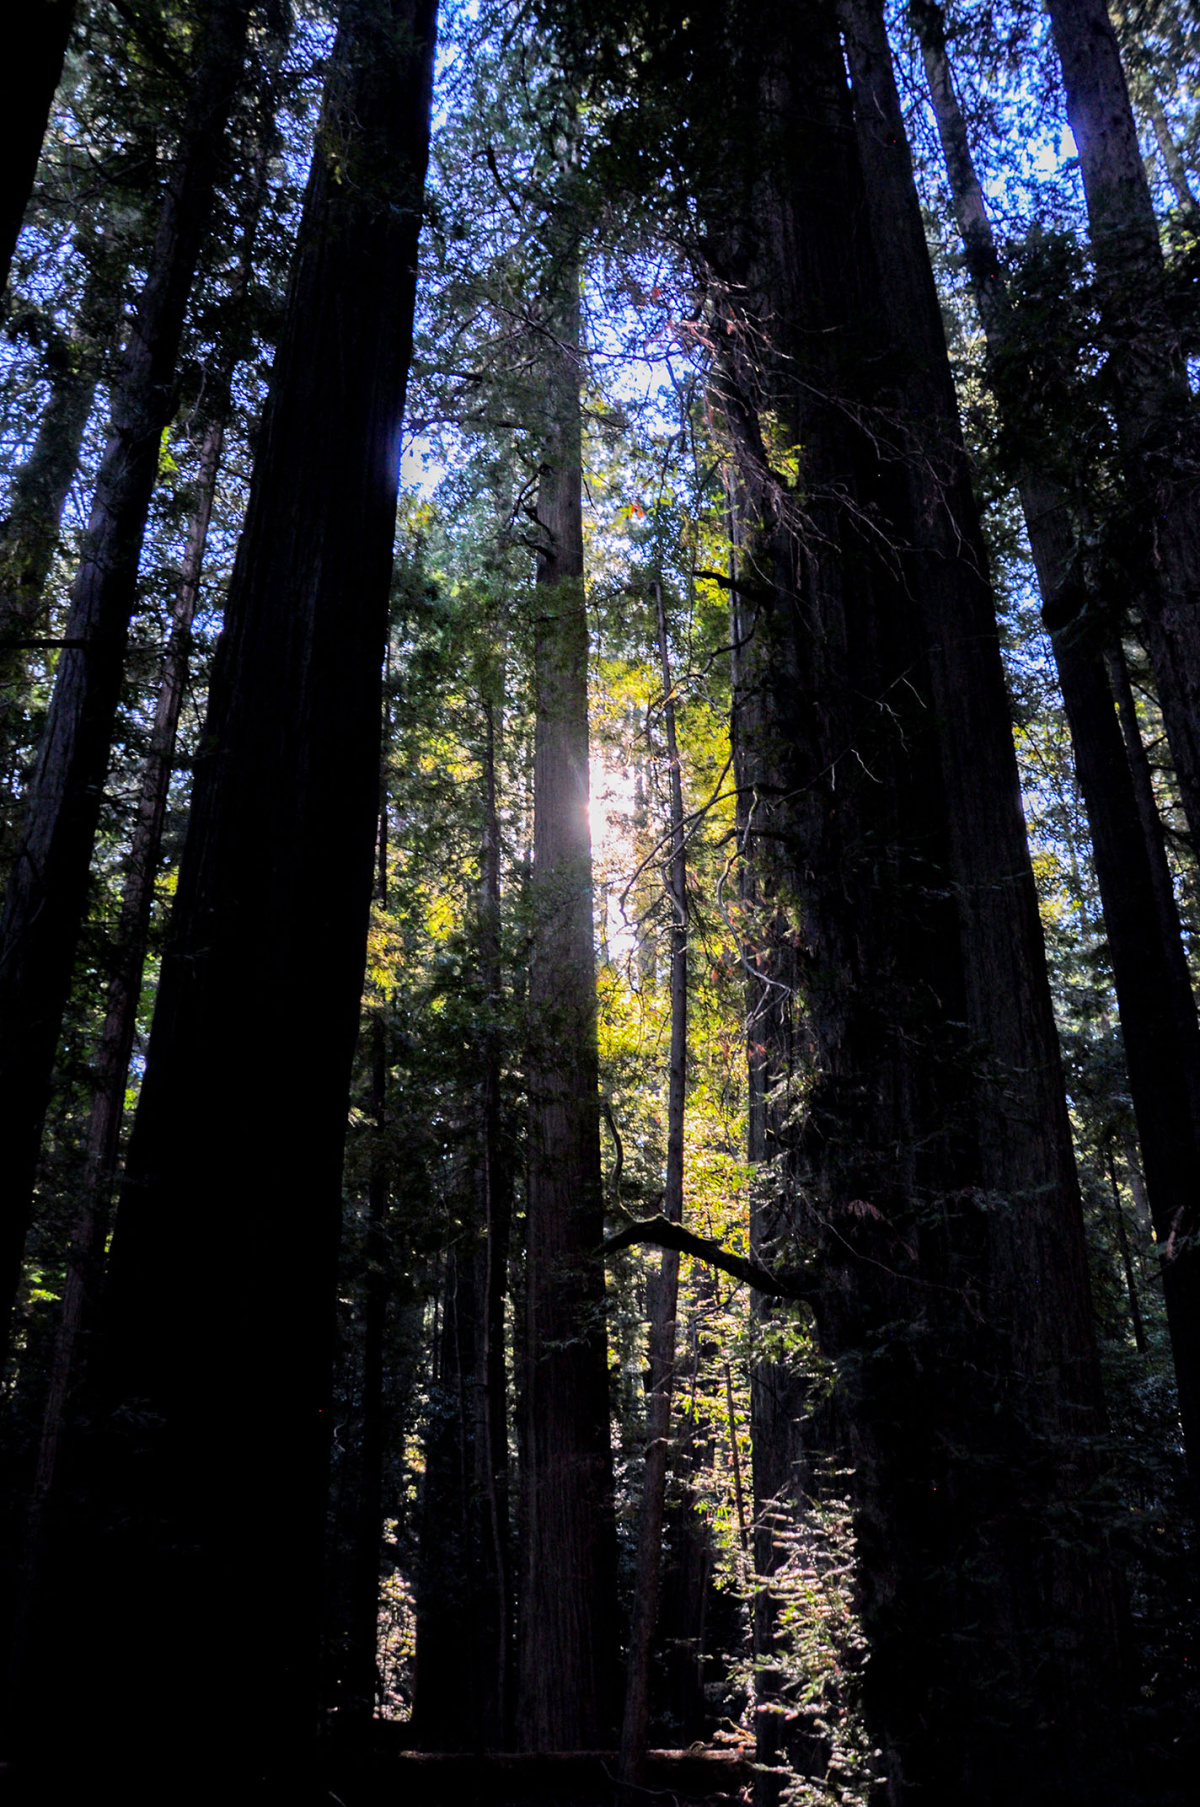 Light through the Redwoods